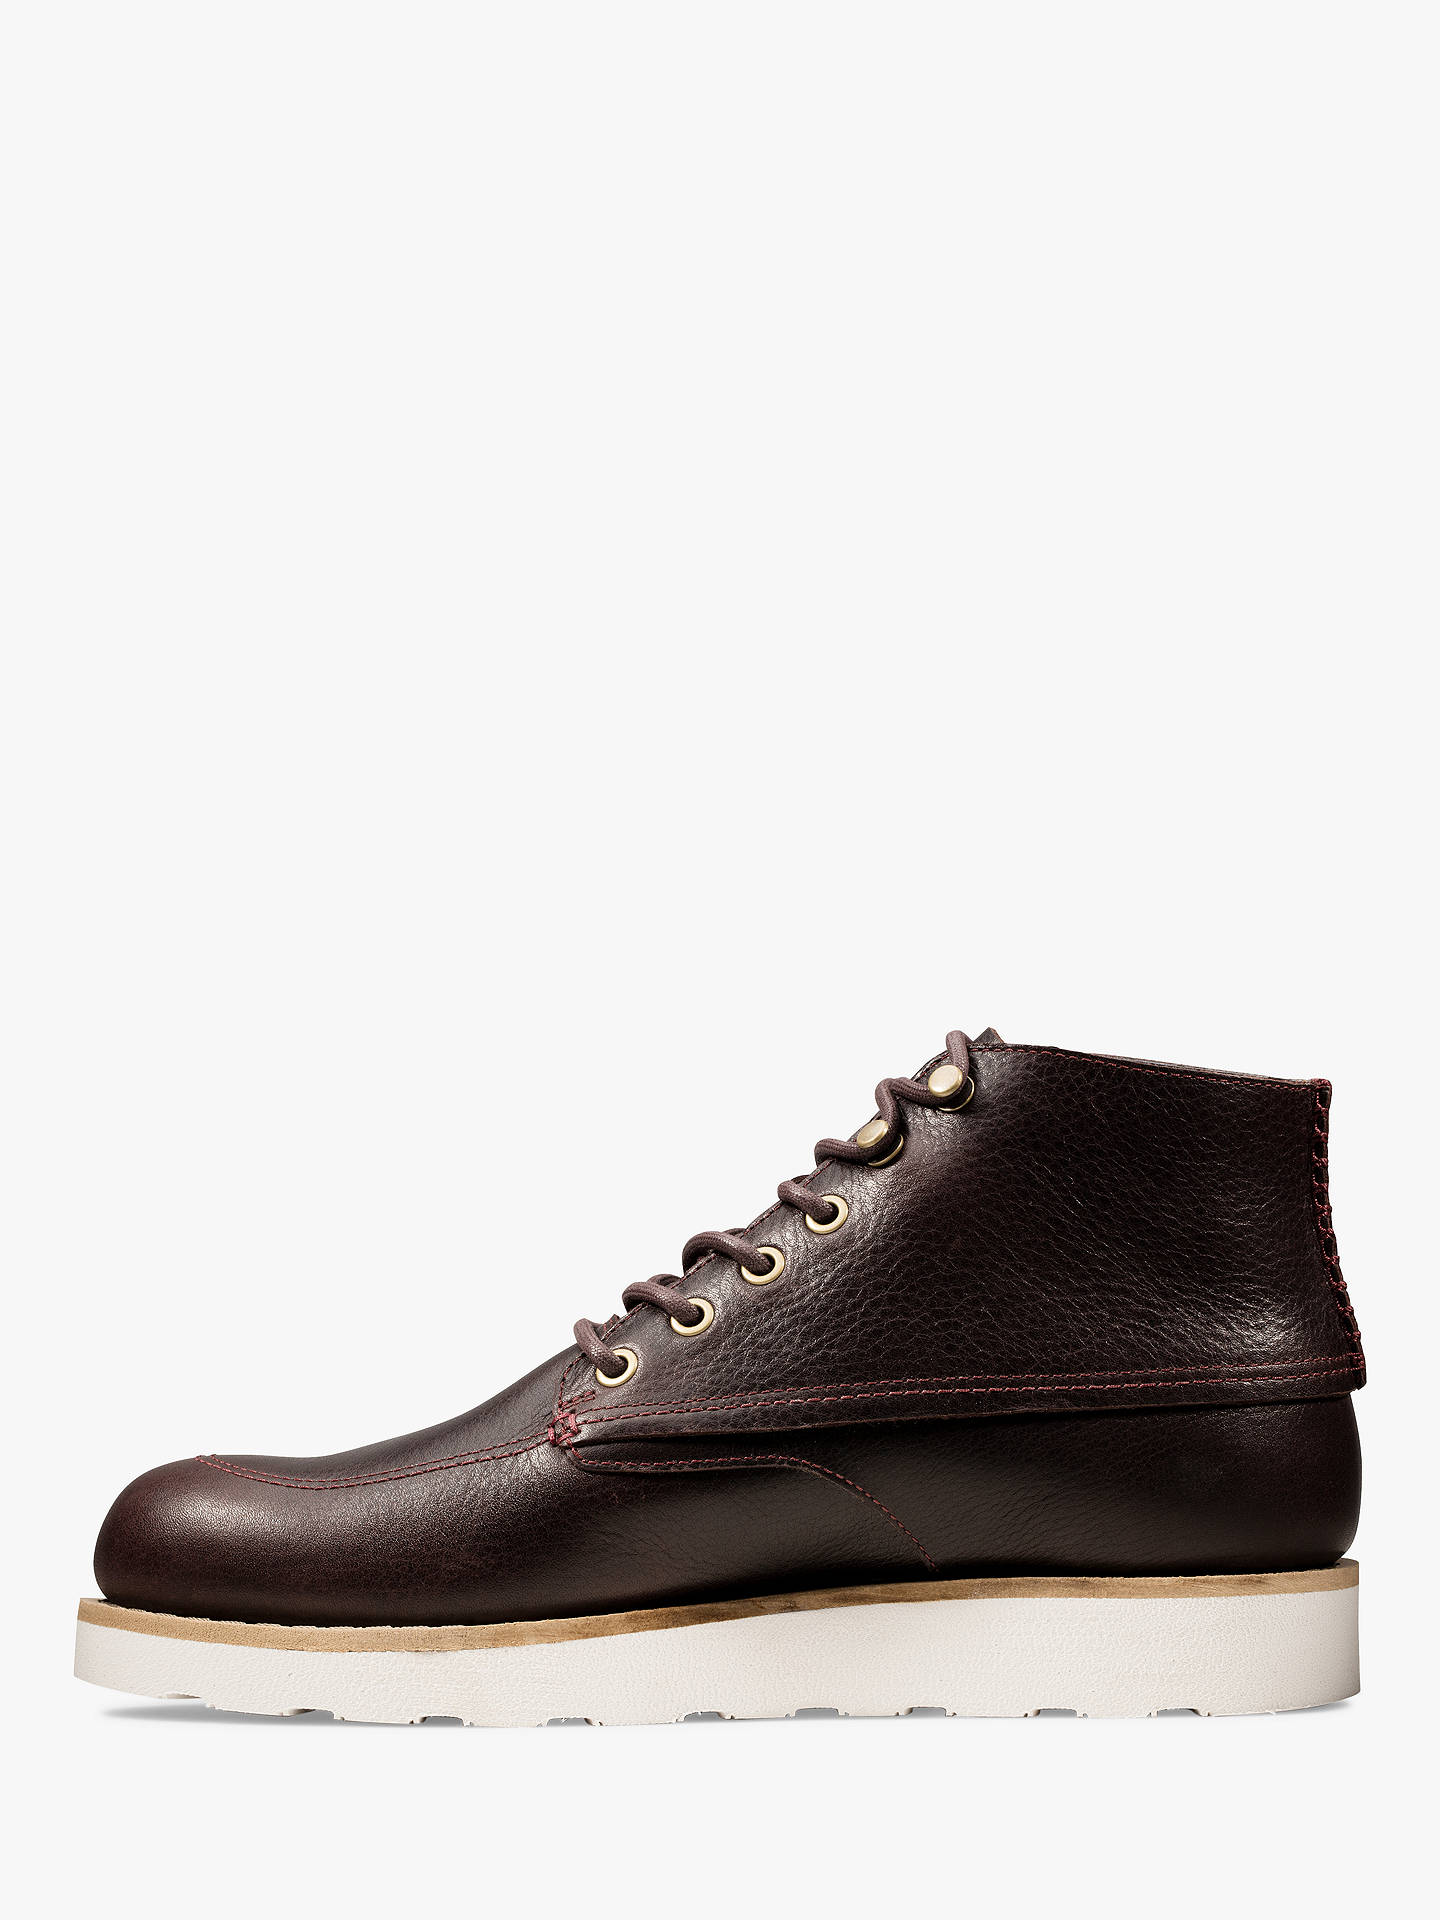 Buy Clarks Trace Quest Leather Boots, Burgundy, 7 Online at johnlewis.com